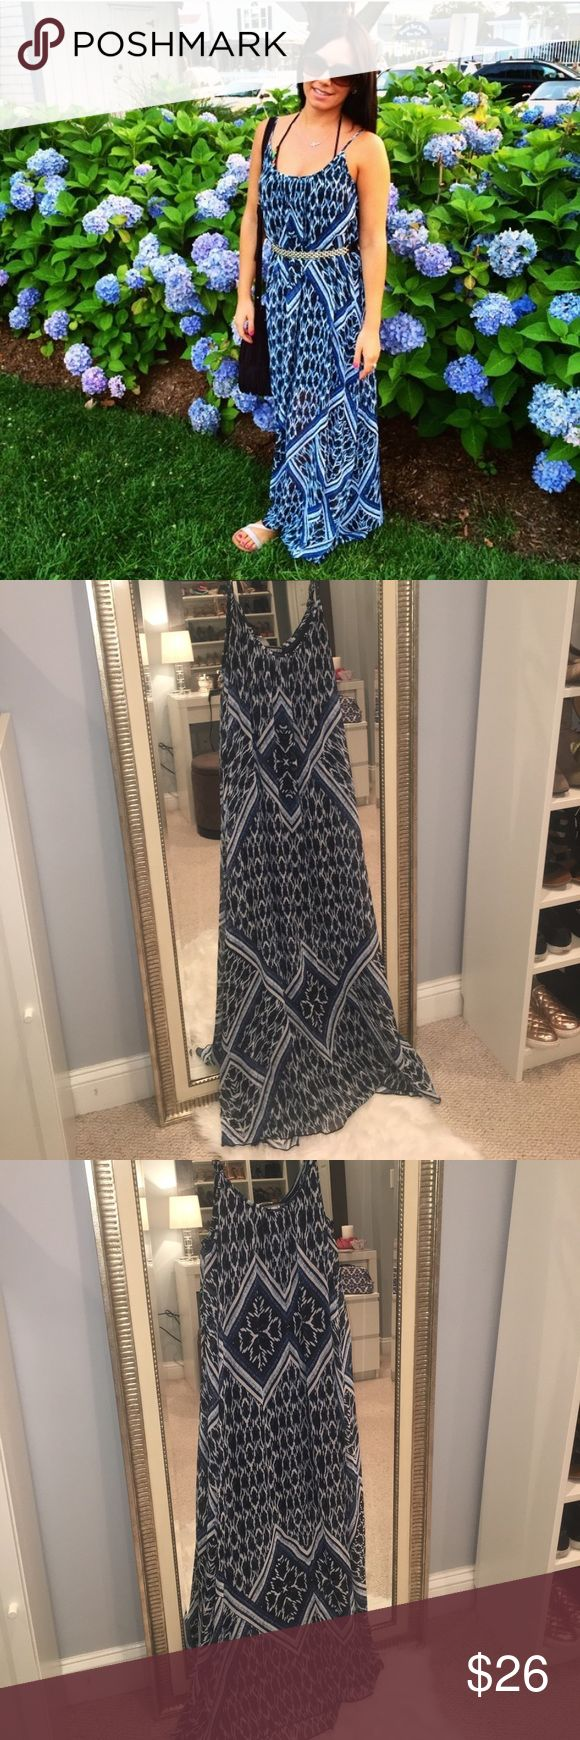 Beautiful Blue Tribal Maxi Dress 💎 This maxi dress is lined with a beautiful sheer pattern over the top. I wore it with a black belt to cinch the waist (not included) but it also looks great without one. Adjustable straps. Fits an XS / S Message me for details! Express Dresses Maxi